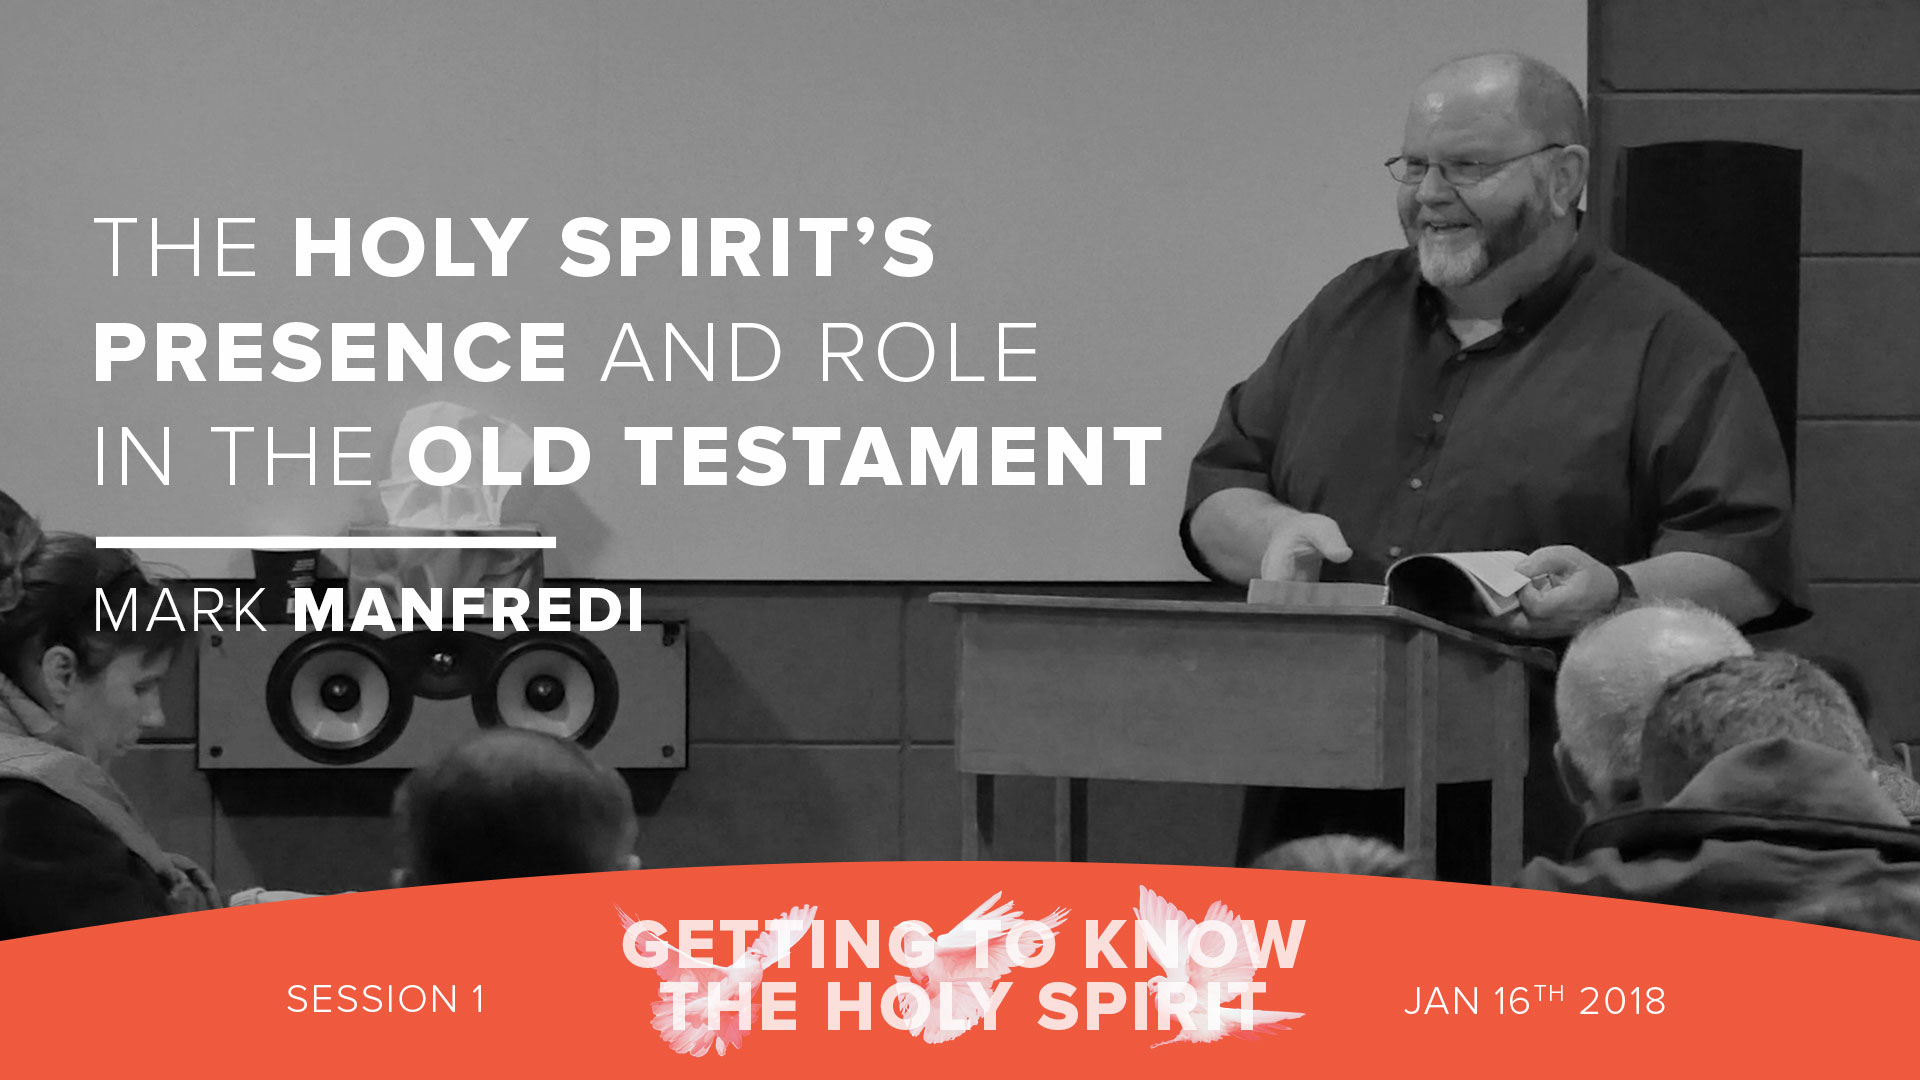 Session 1 - The Holy Spirit's presence and role on the Old Testament